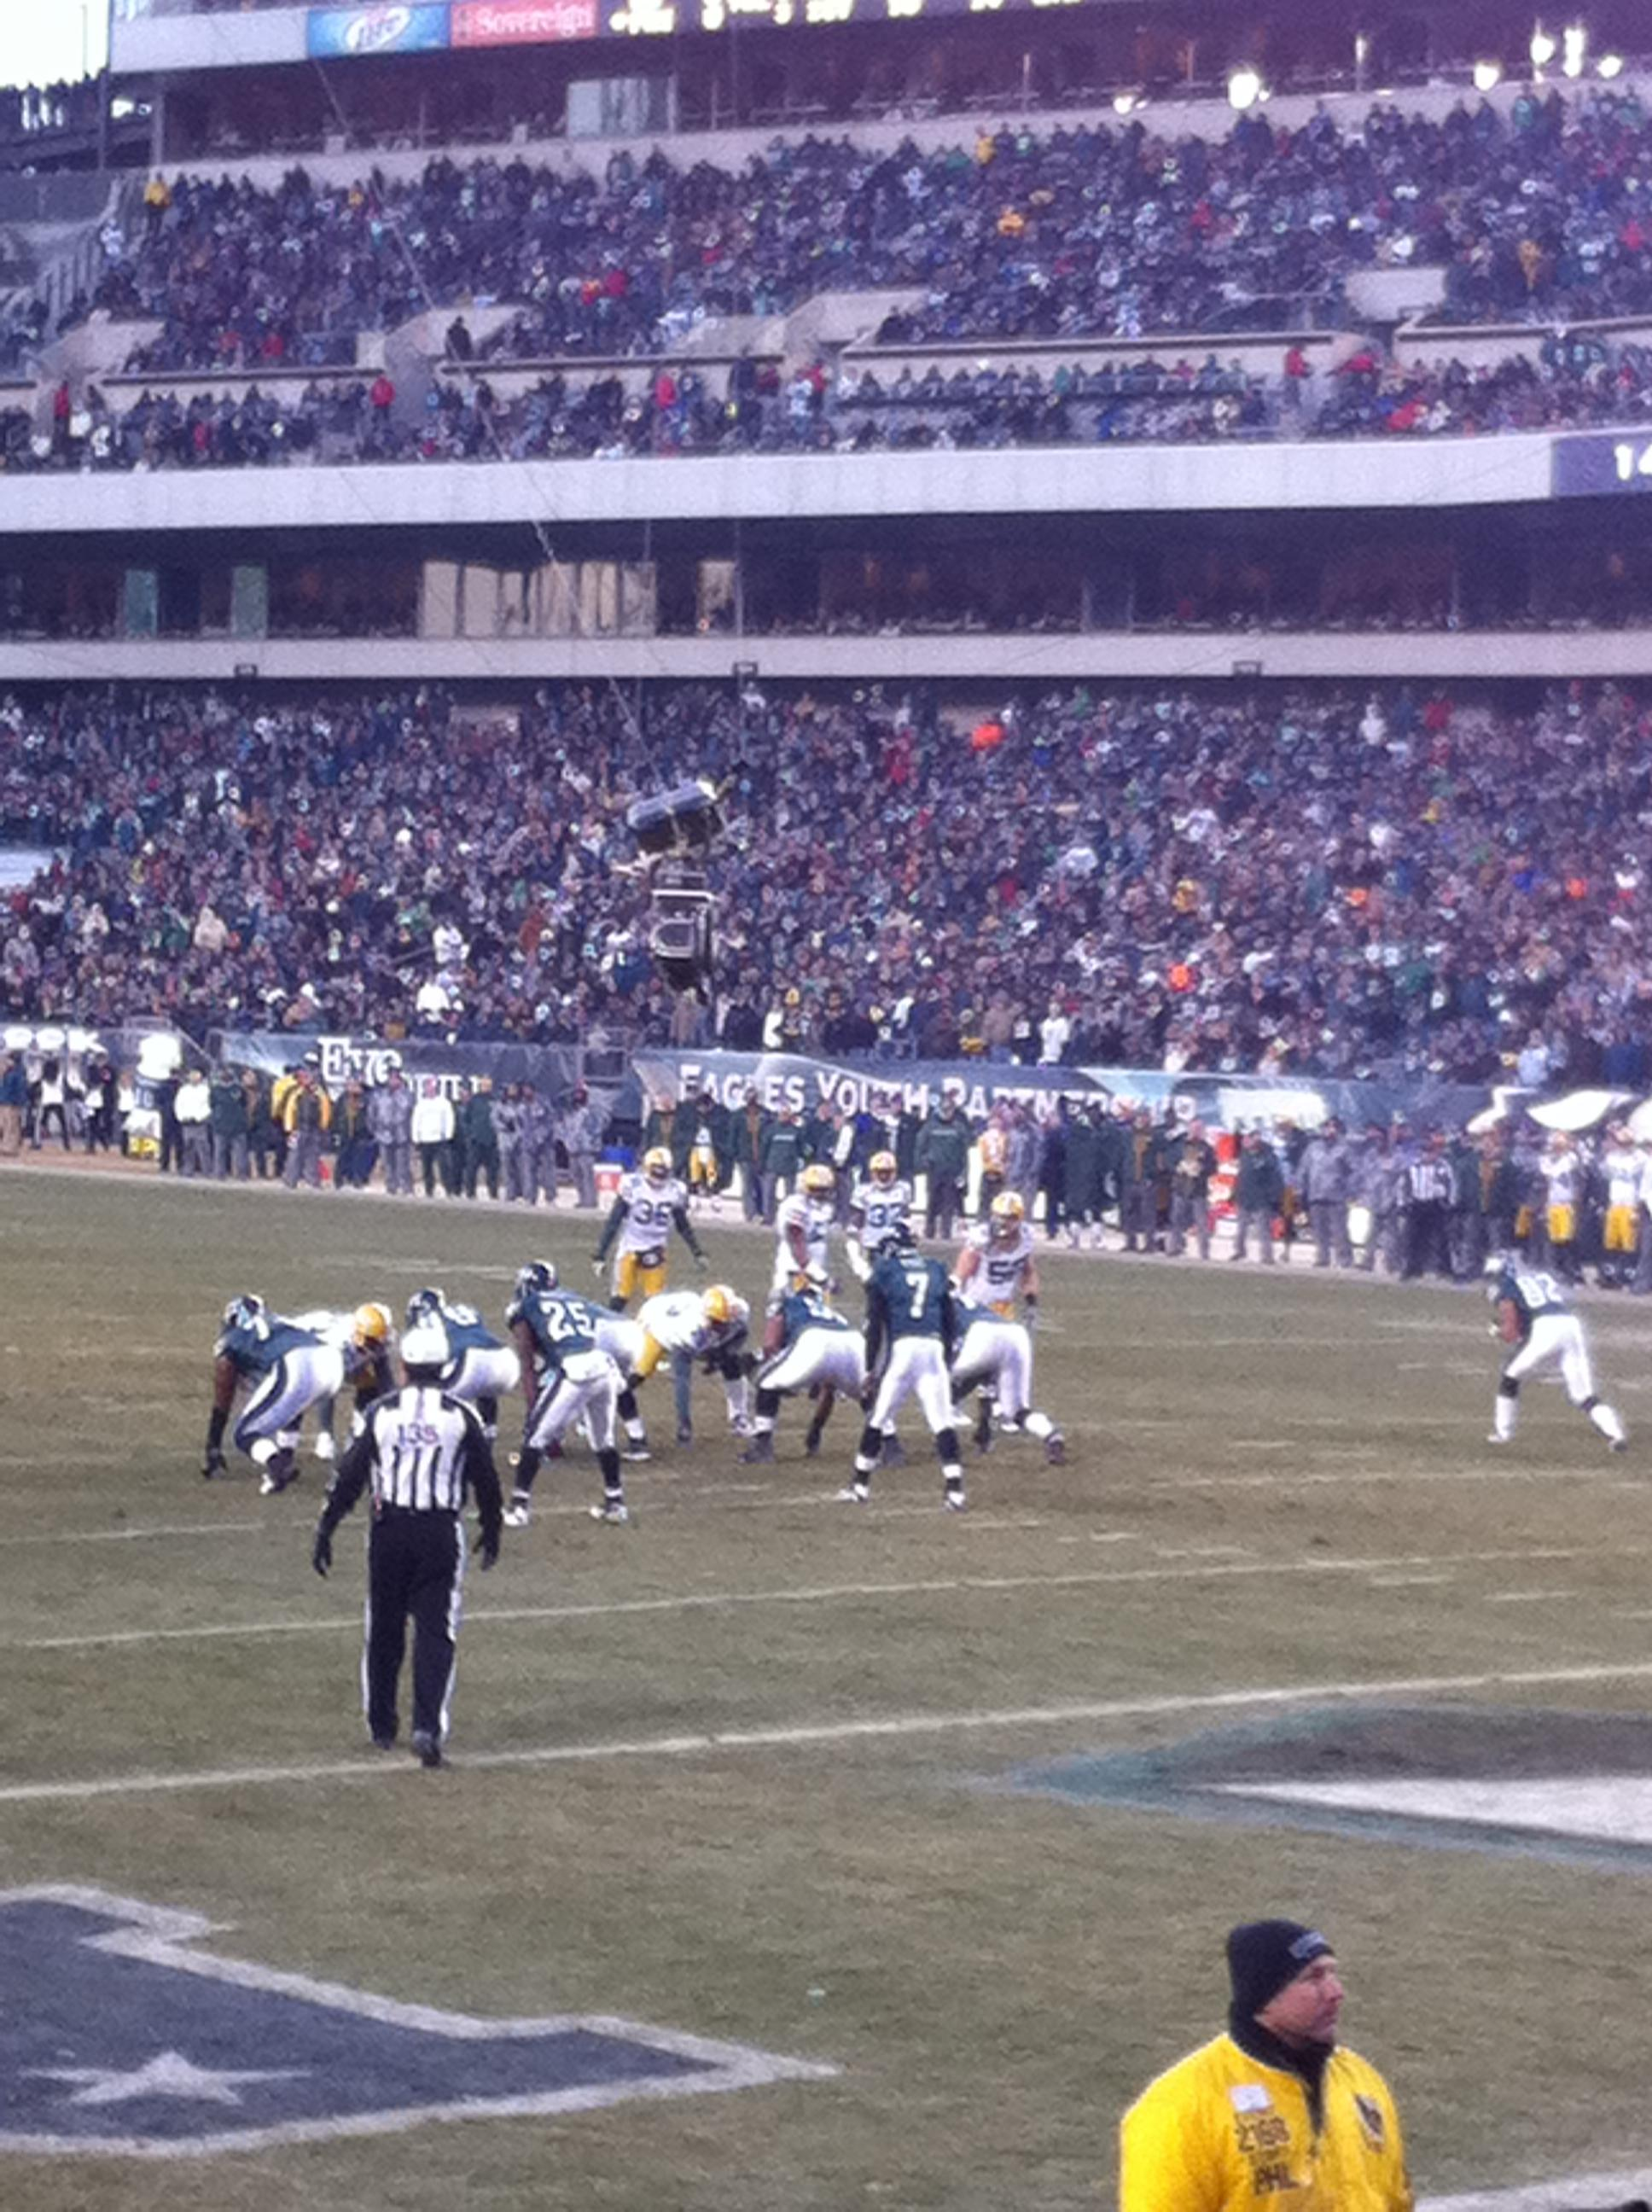 Lincoln Financial Field Section 108 Row 6